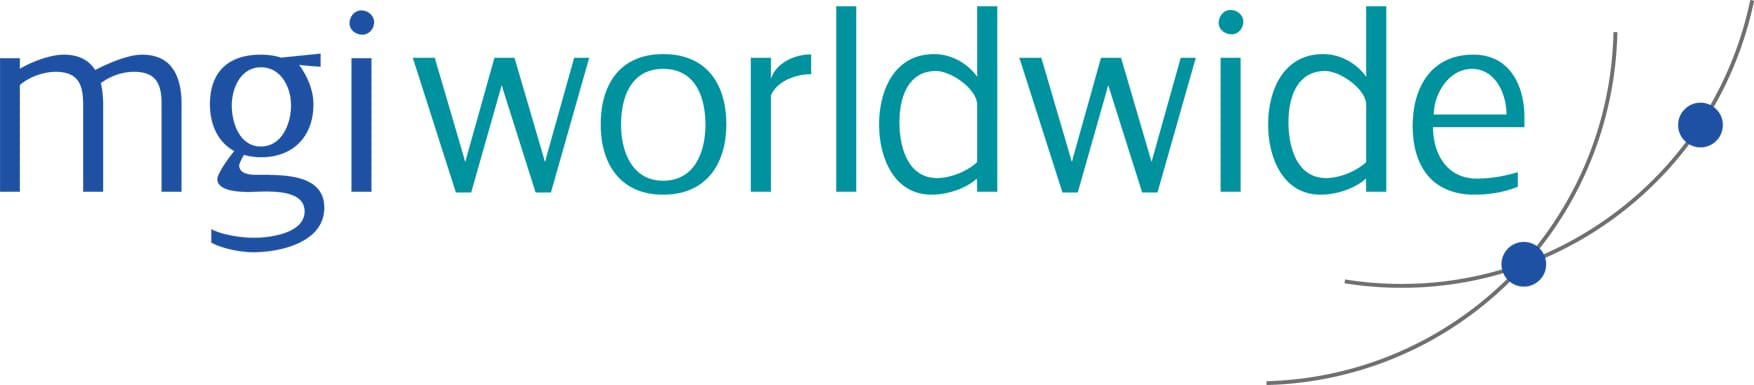 world wide logo